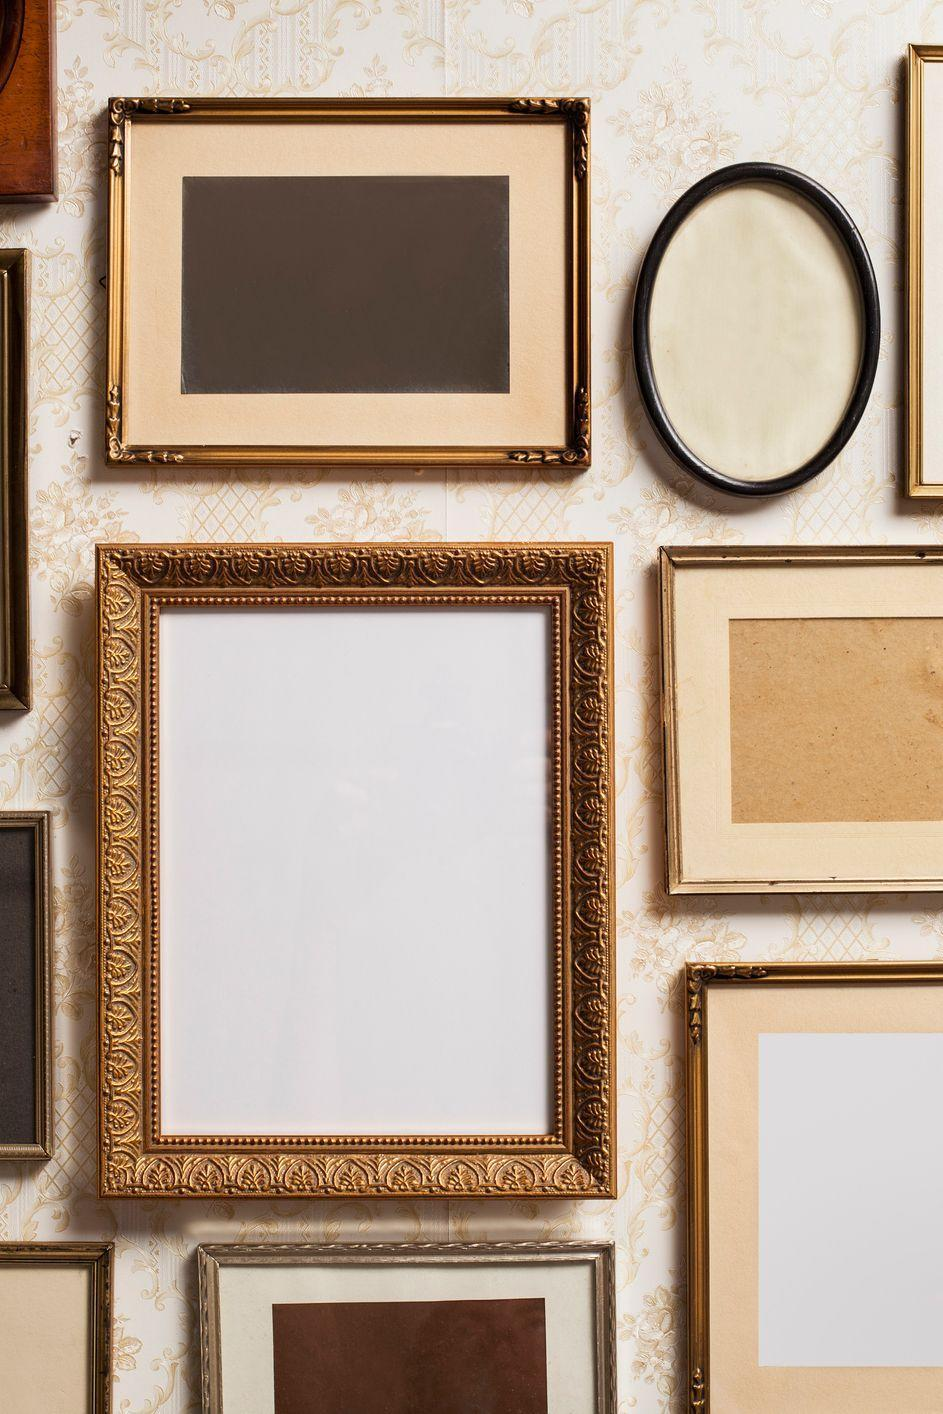 <p>They may not be the most elegant options, but for basic colored frames (like for your wall collage), dollar stores let you stock up for much less. </p>